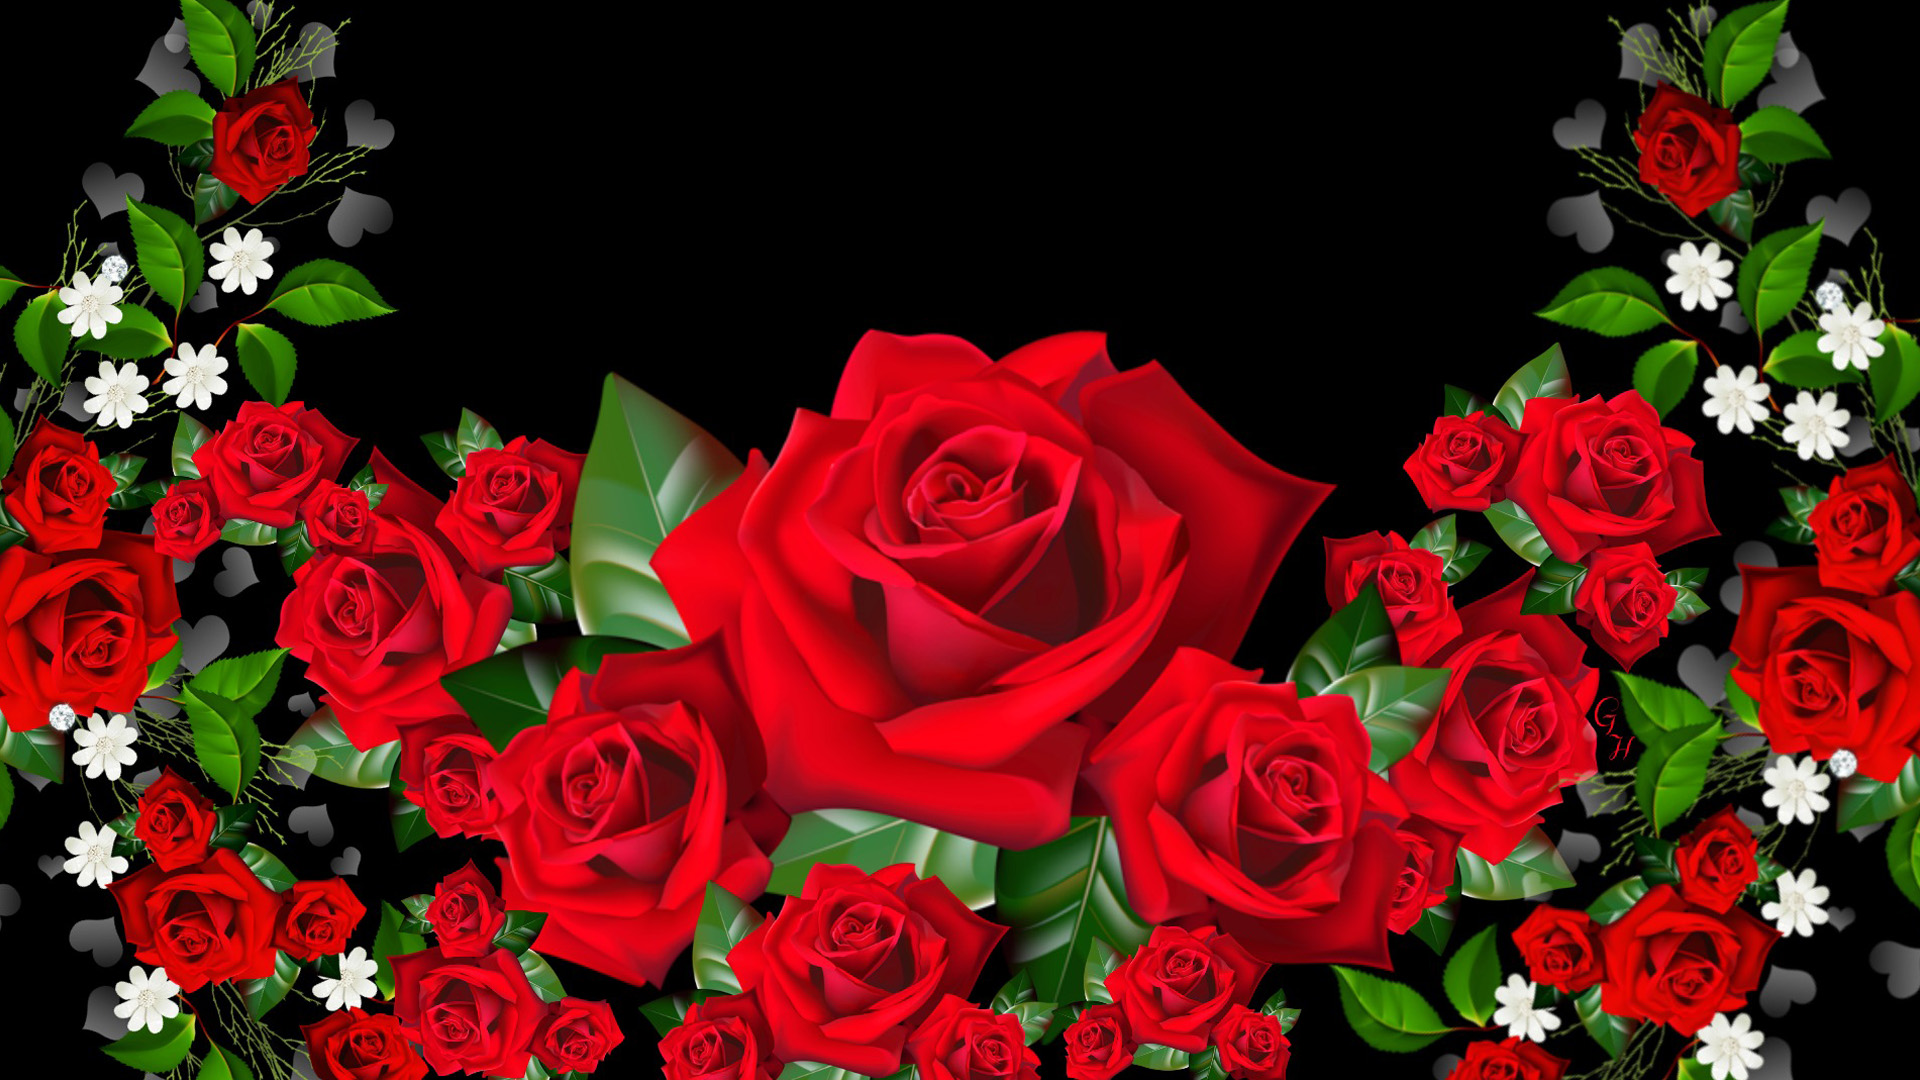 Wallpaper Rose Wallpapers For Free Download About Wallpapers  - Rose 3d Hd Wallpapers Flowers - HD Wallpaper